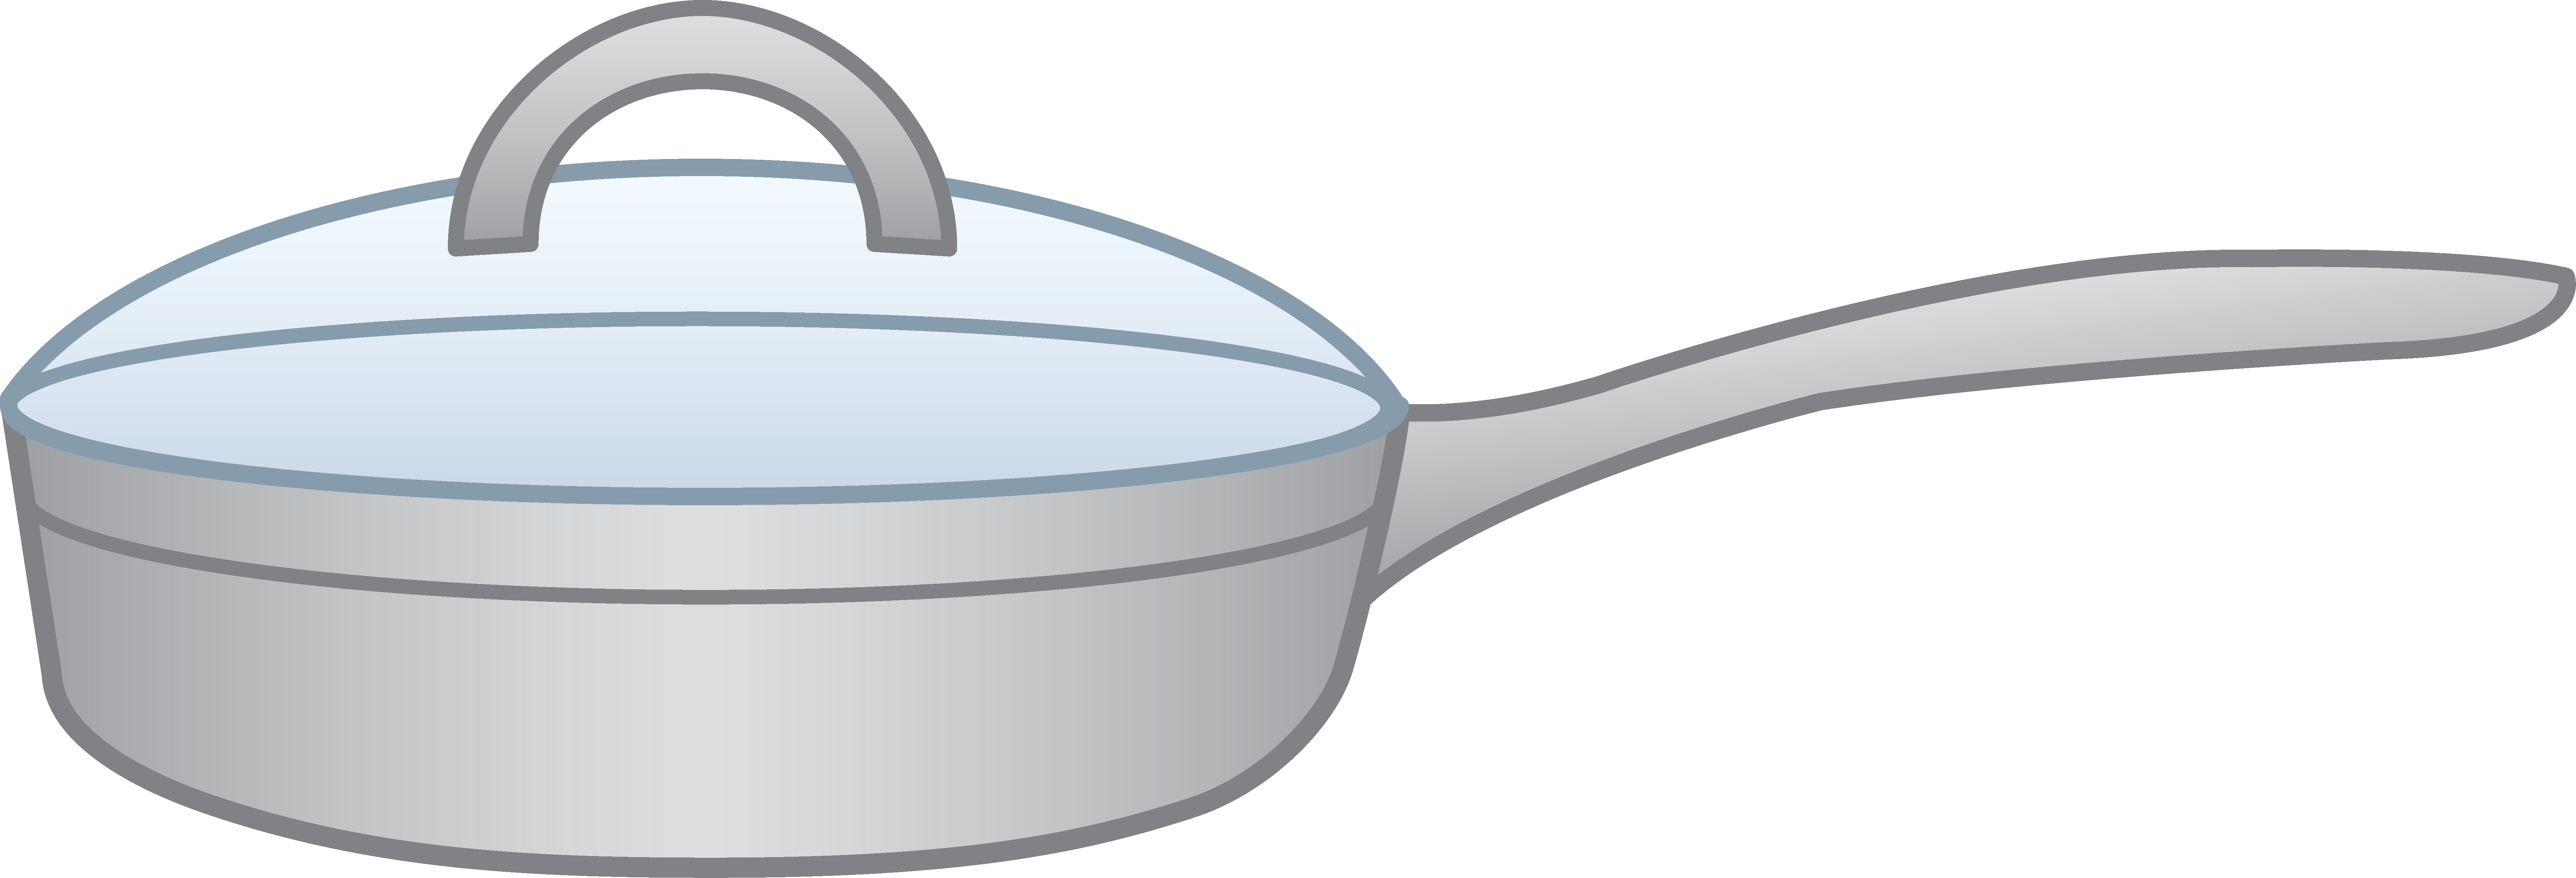 Frying Pan Clip Art.